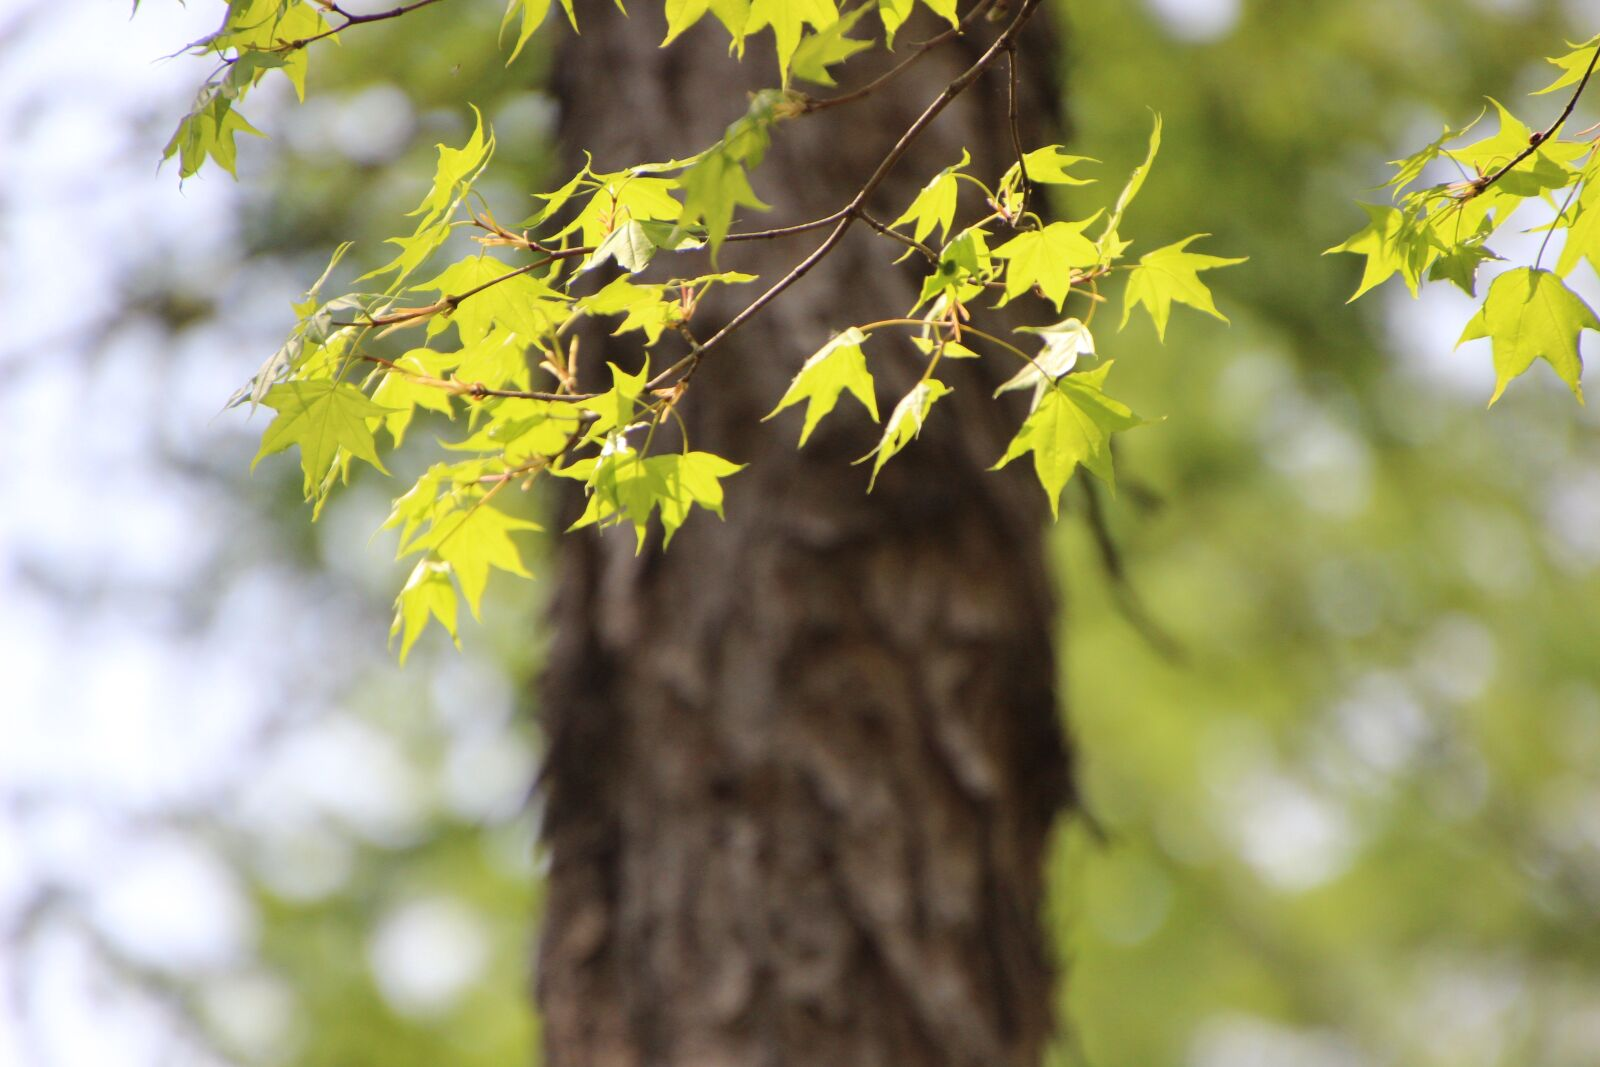 """Canon EOS 600D (Rebel EOS T3i / EOS Kiss X5) sample photo. """"Nature, maple, leaves"""" photography"""